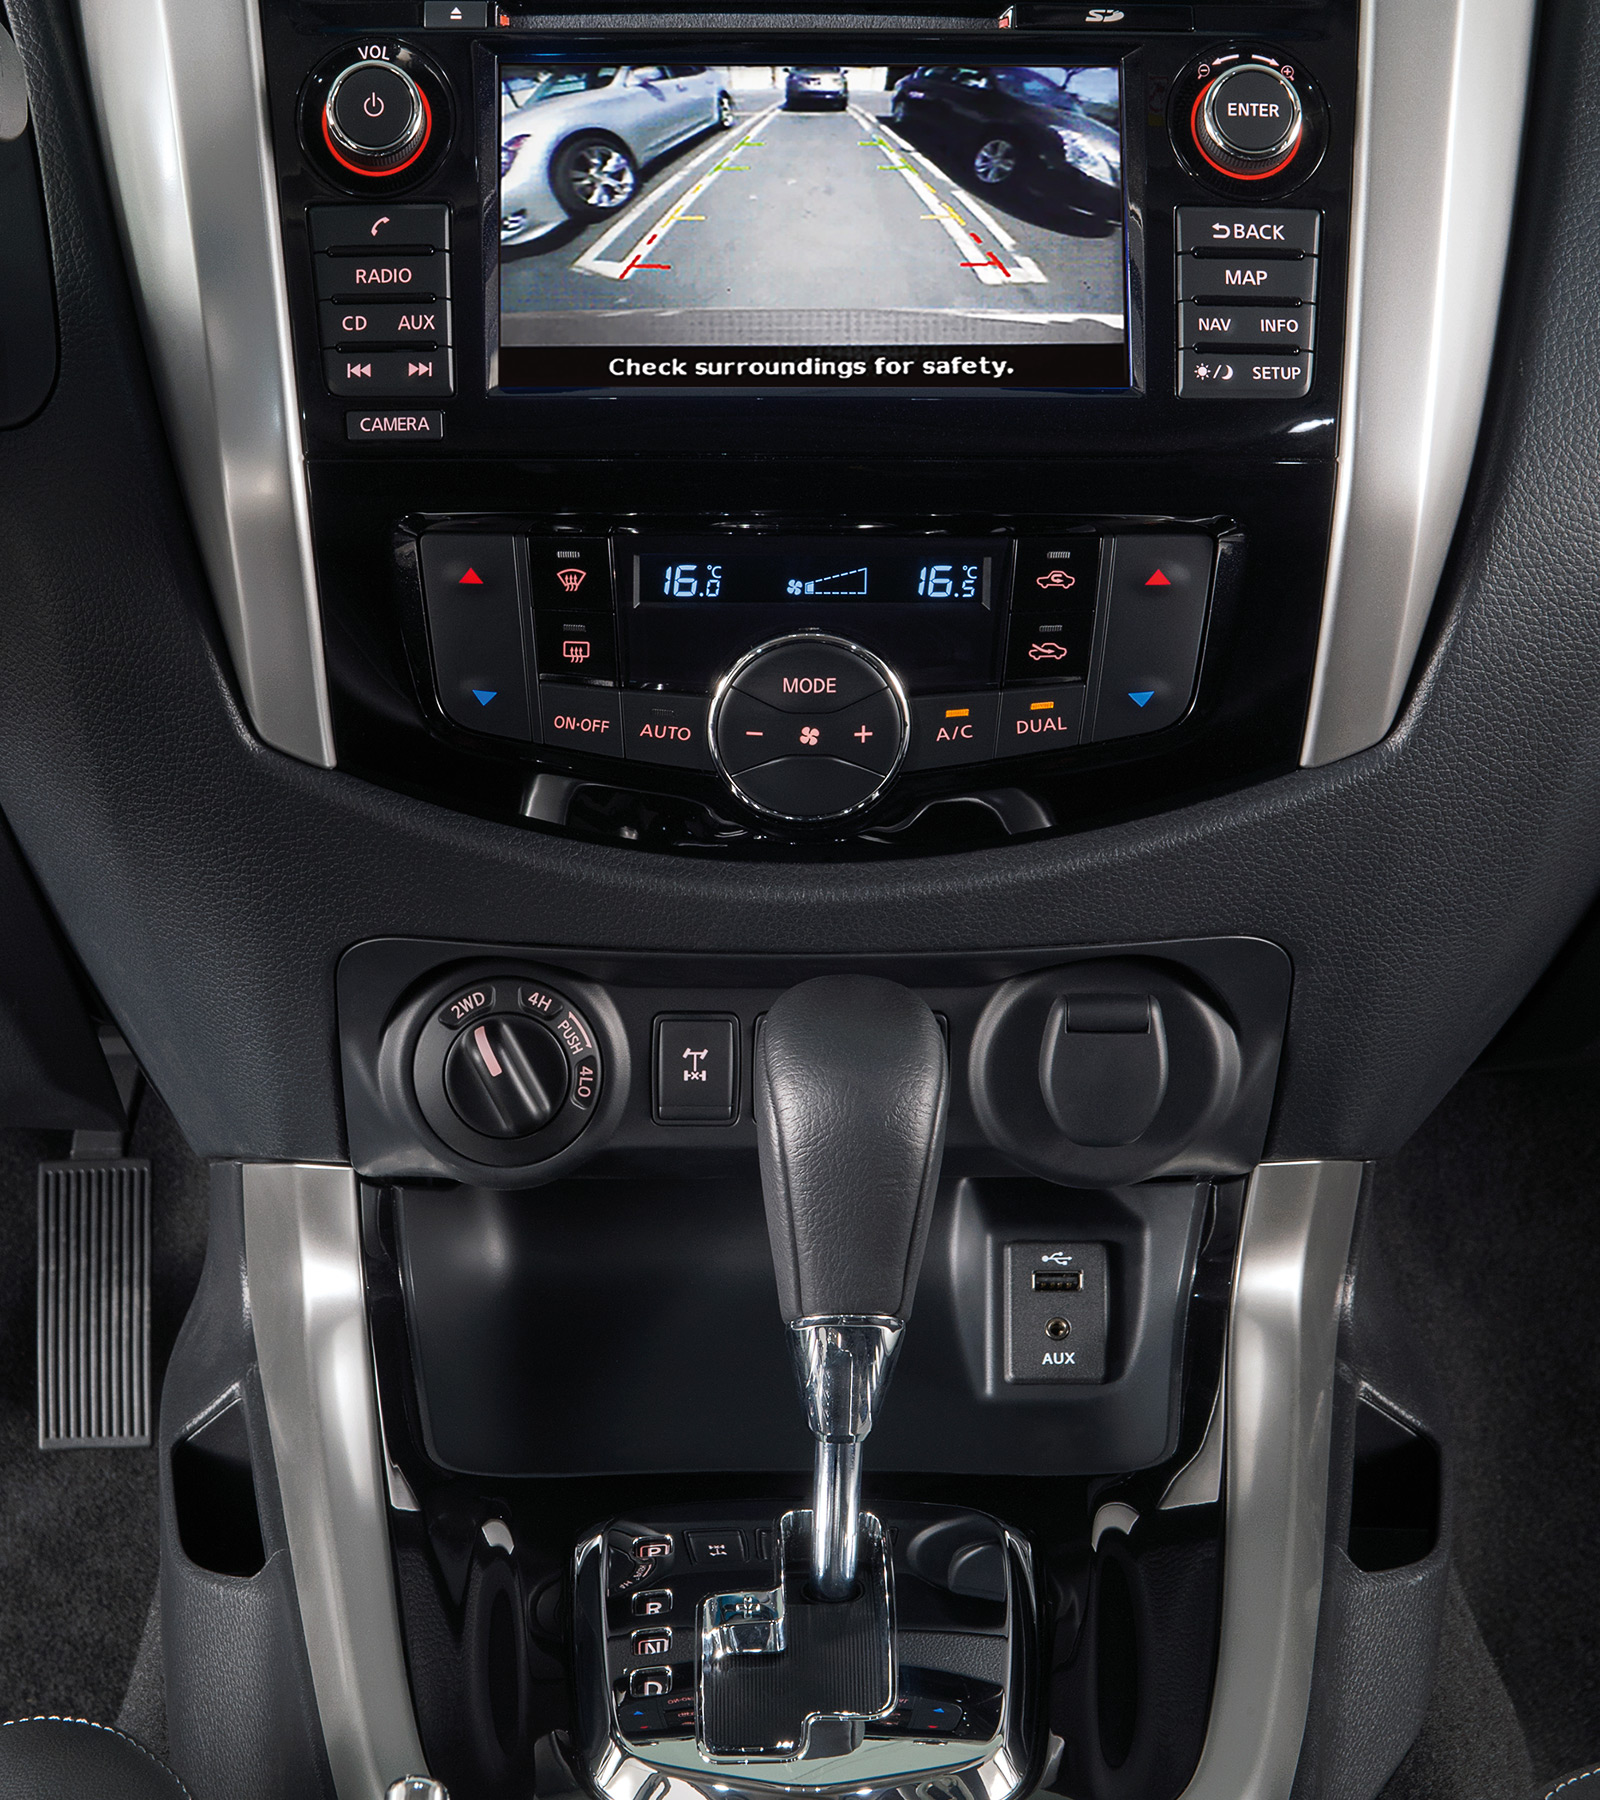 Nye Nissan NAVARA Off-Roader at32 – Around View Monitor-skjerm